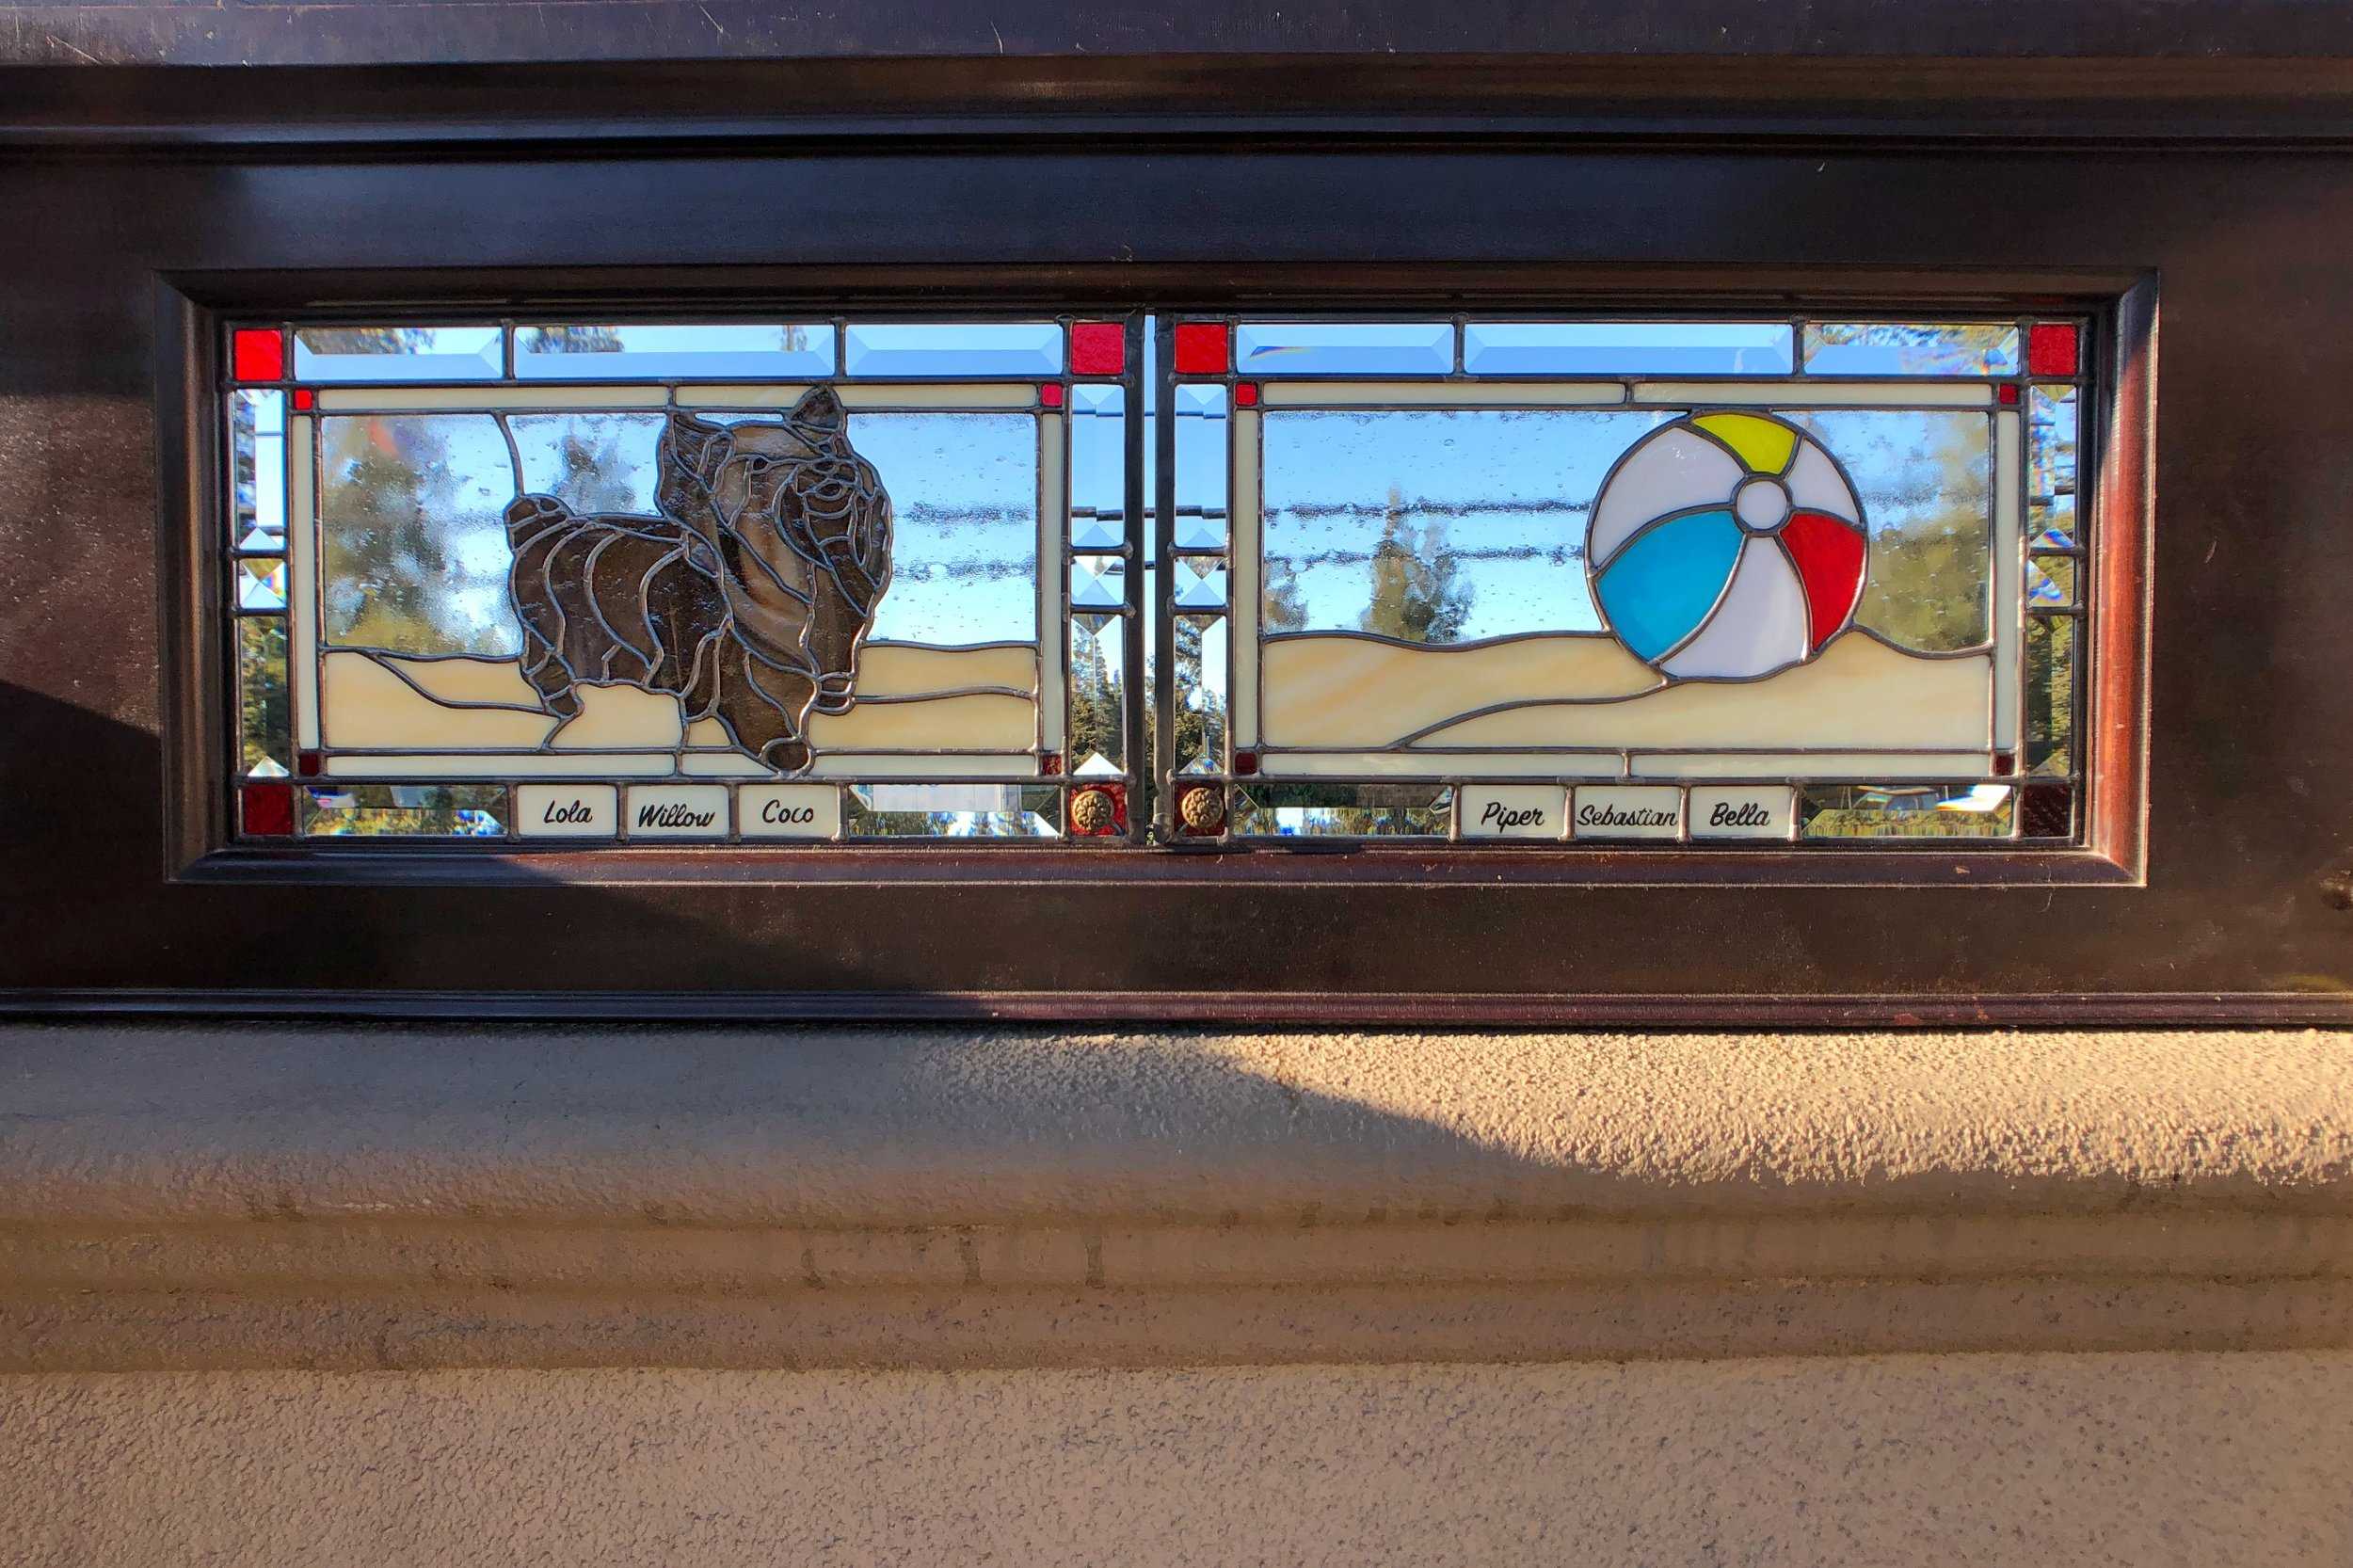 custom backlit stained glass dog at beach ball name plates yorkie terrier legacy glass studios player piano door beveled spectrum glass whimsical.jpg